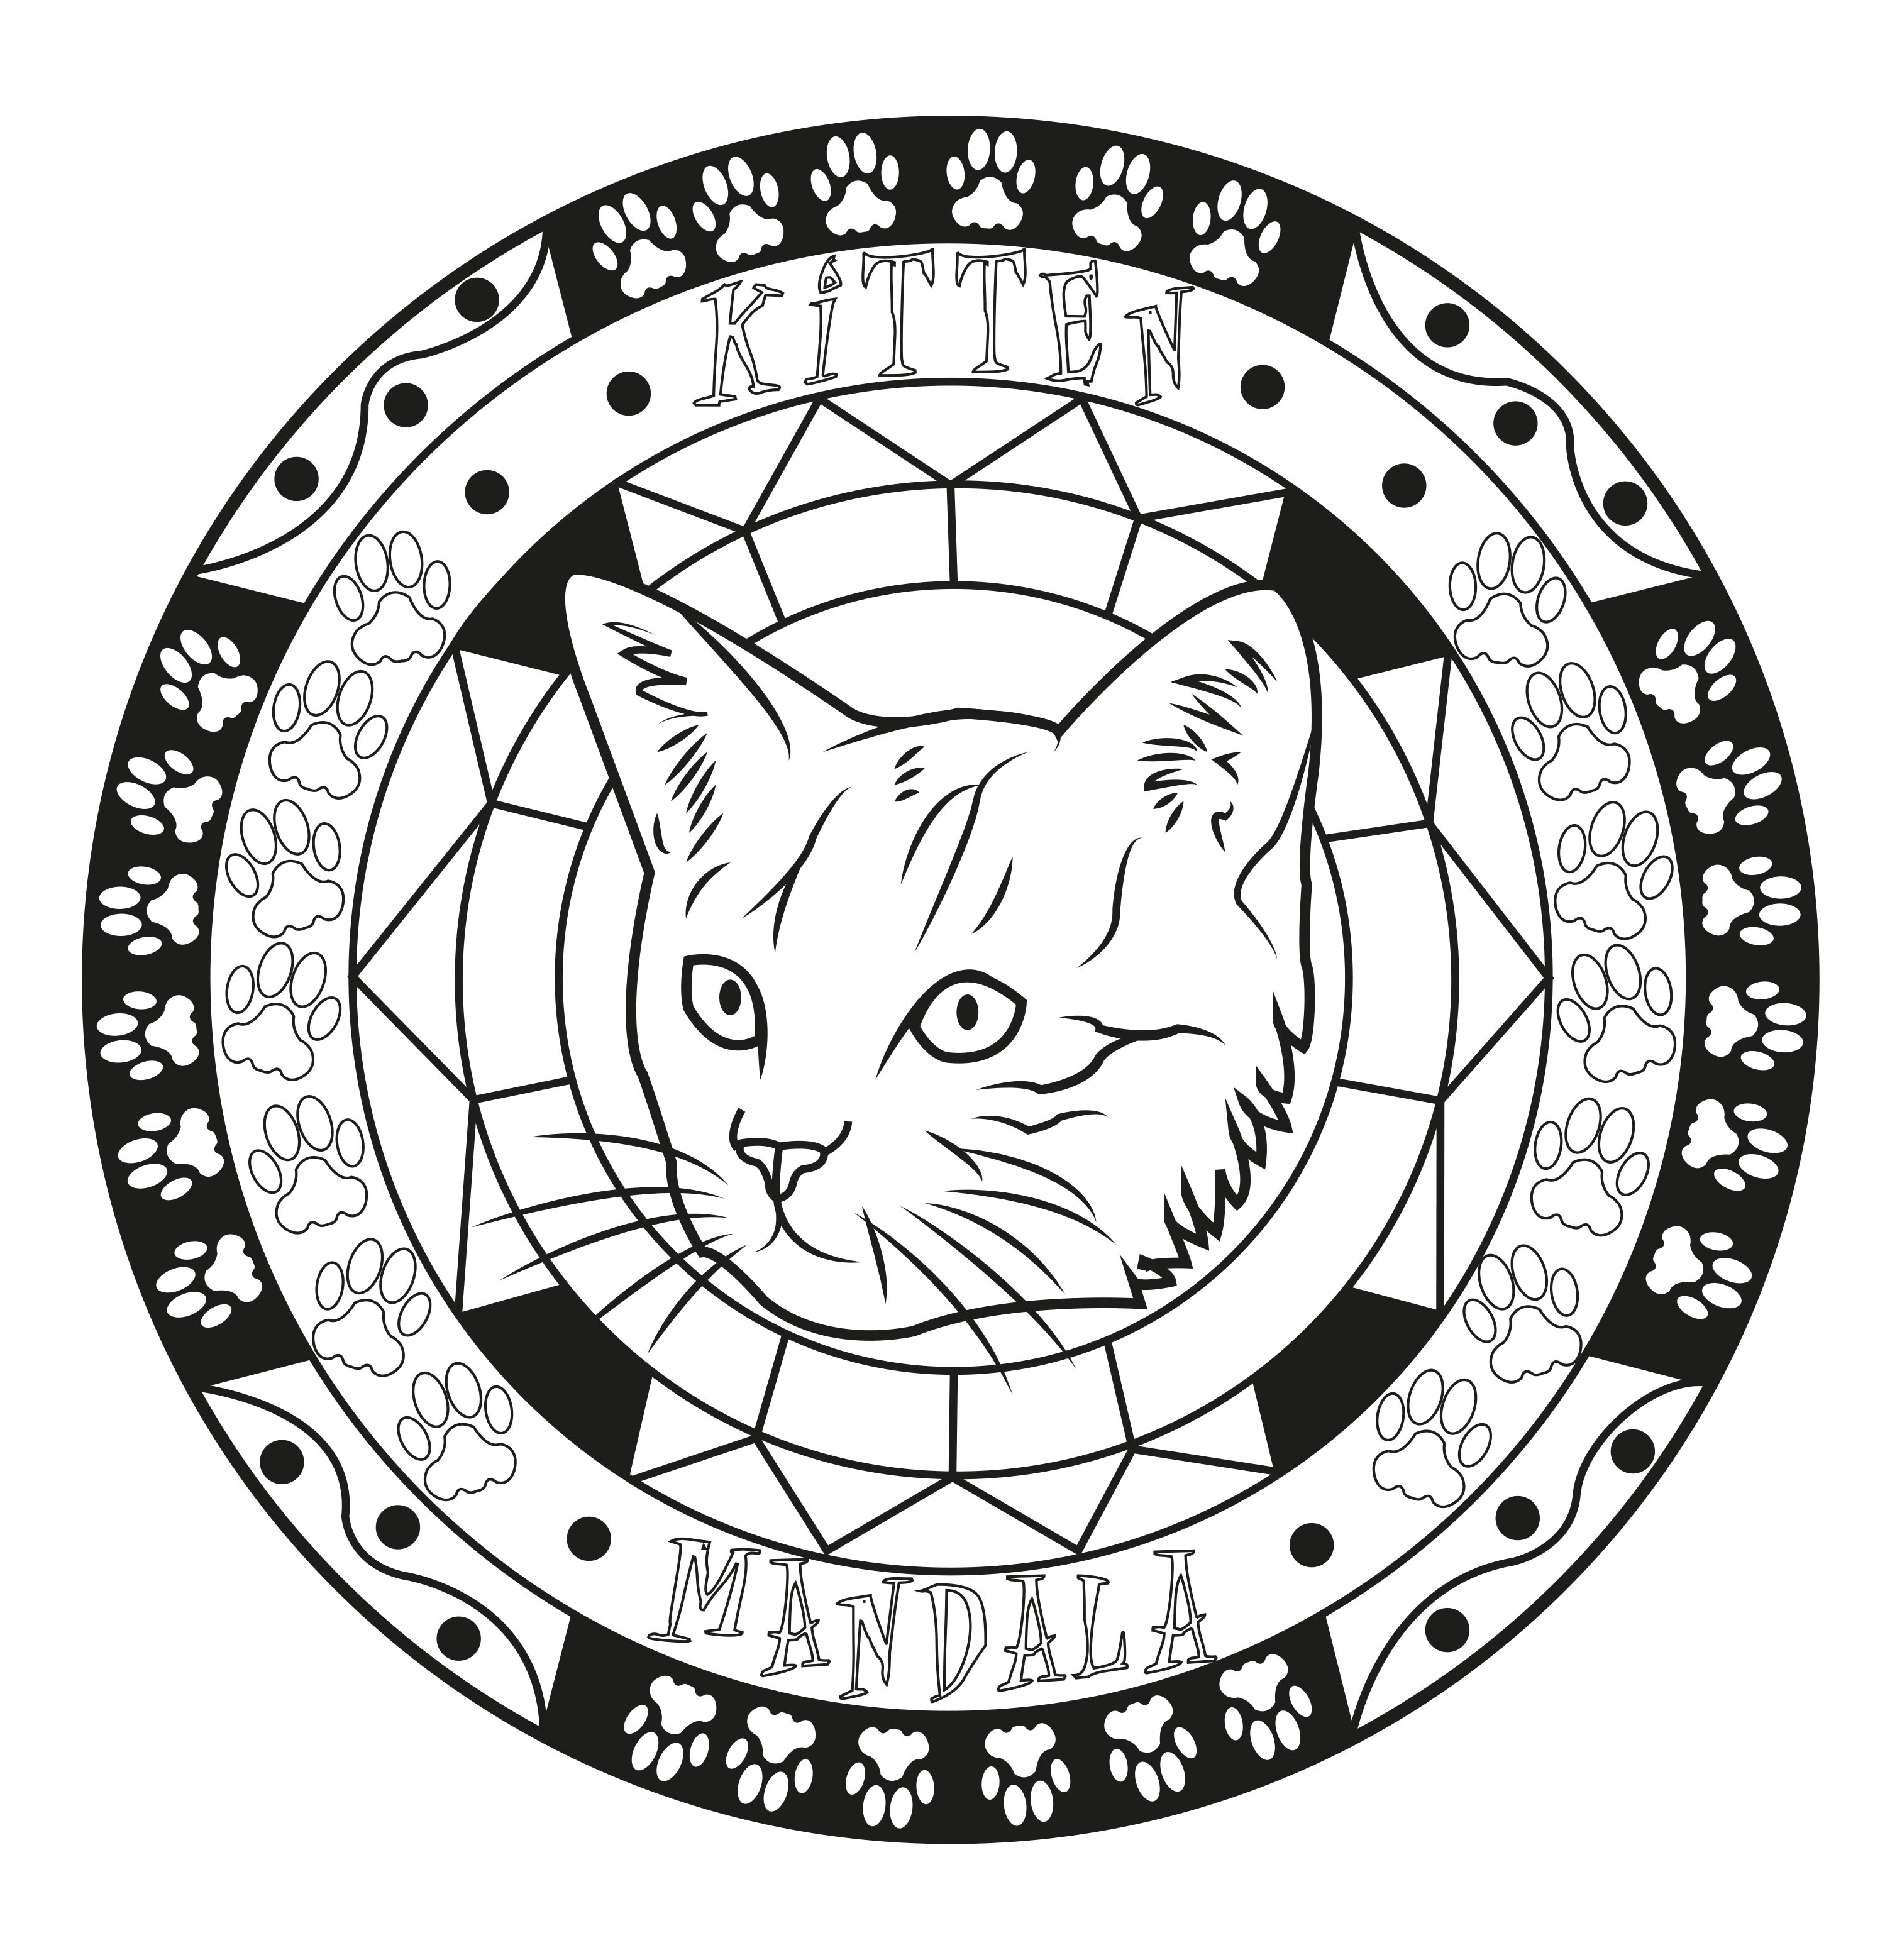 Mandala coloring page on the cat's theme